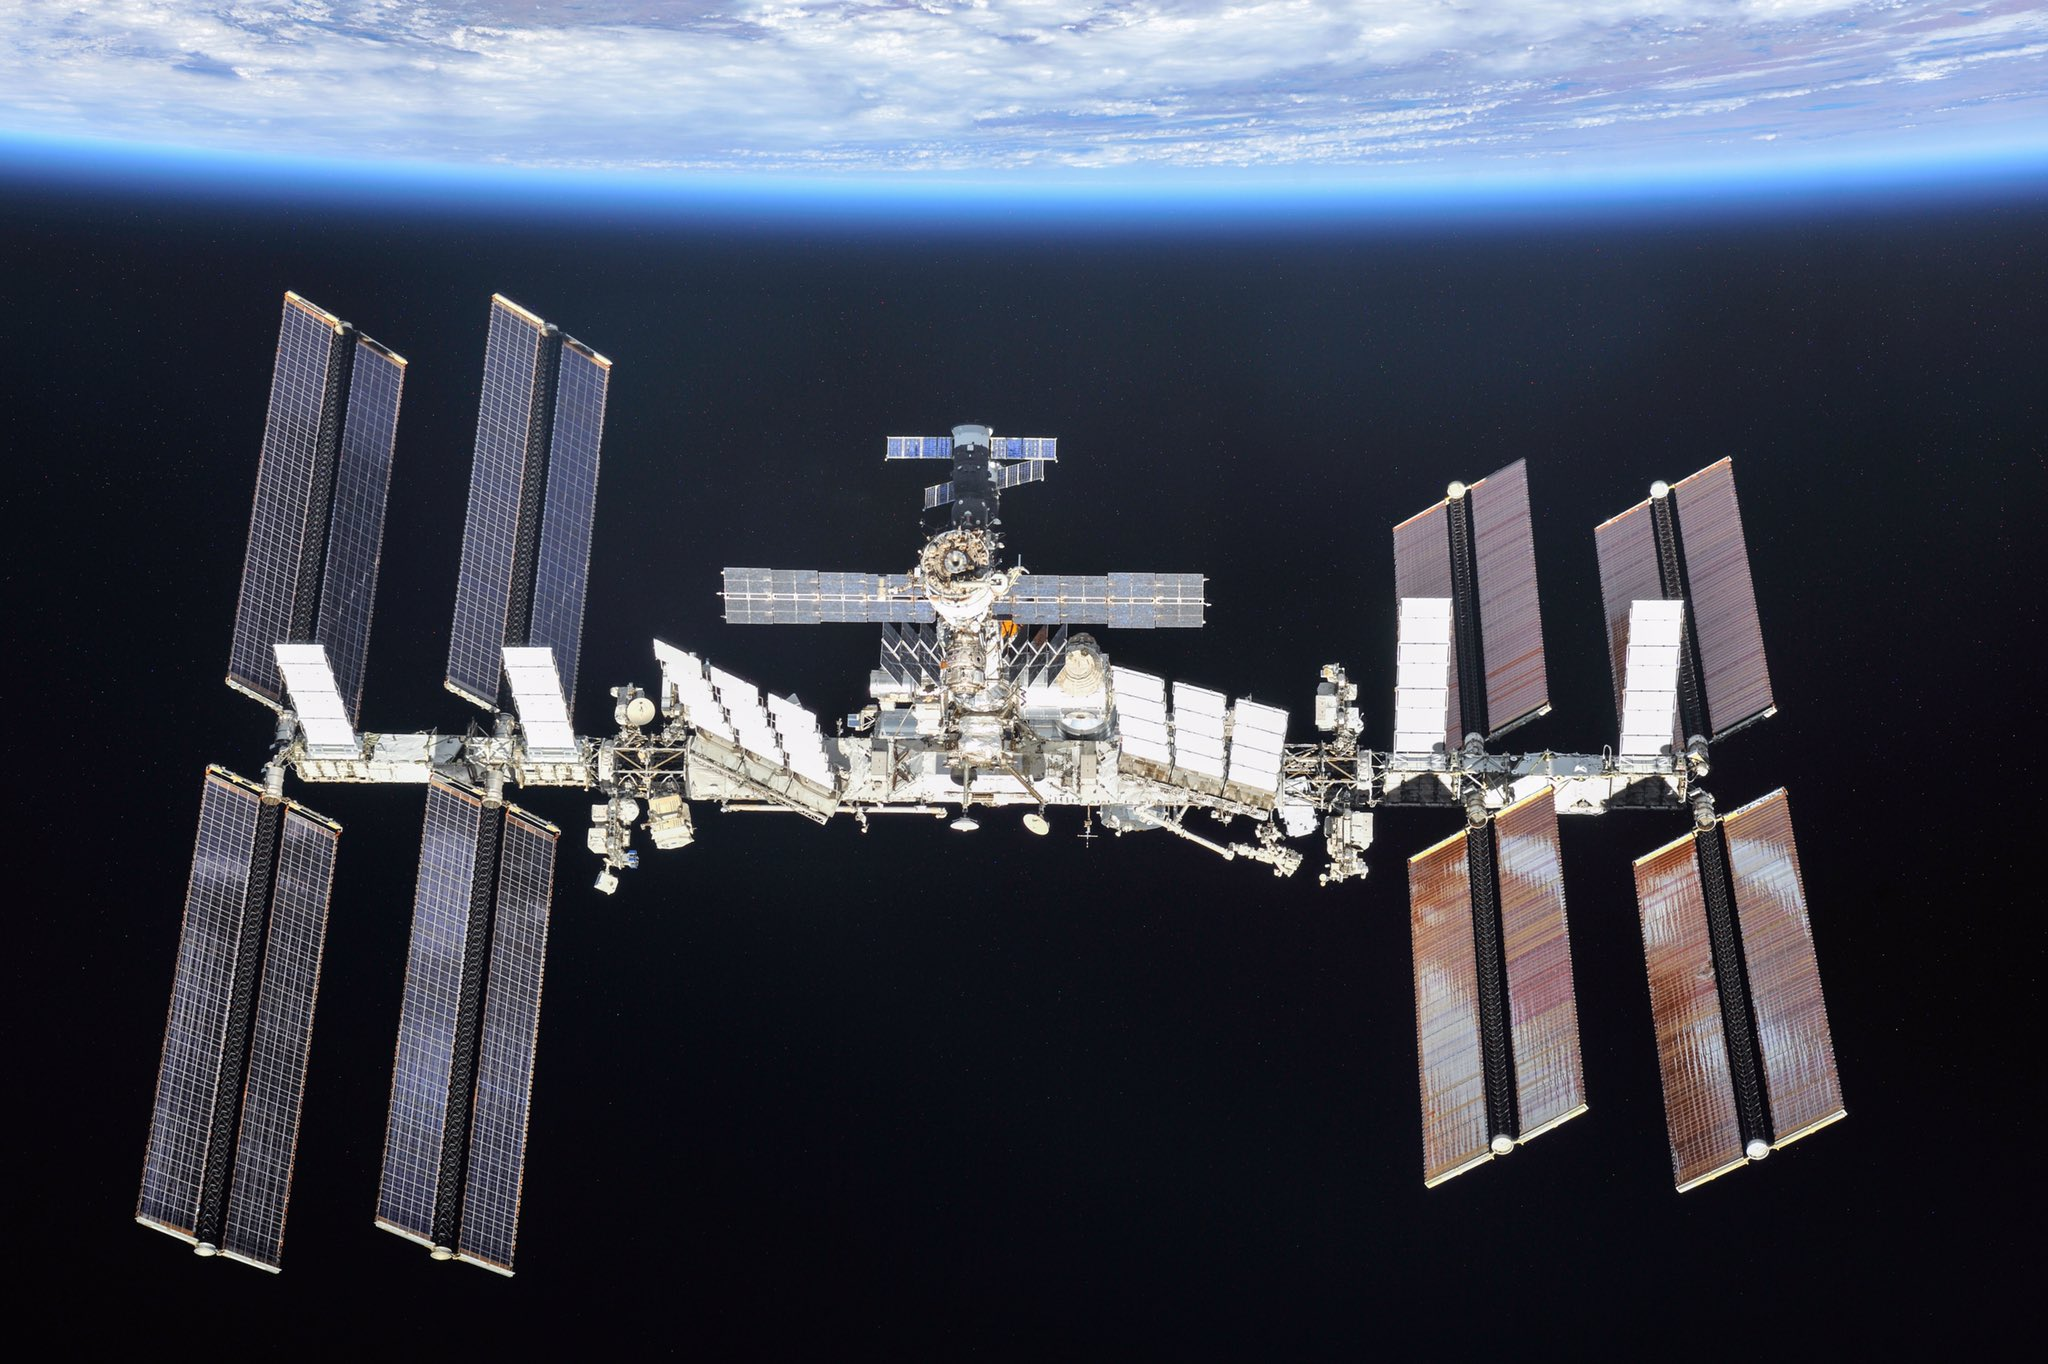 International space station naked eye, alexis love nude gifs